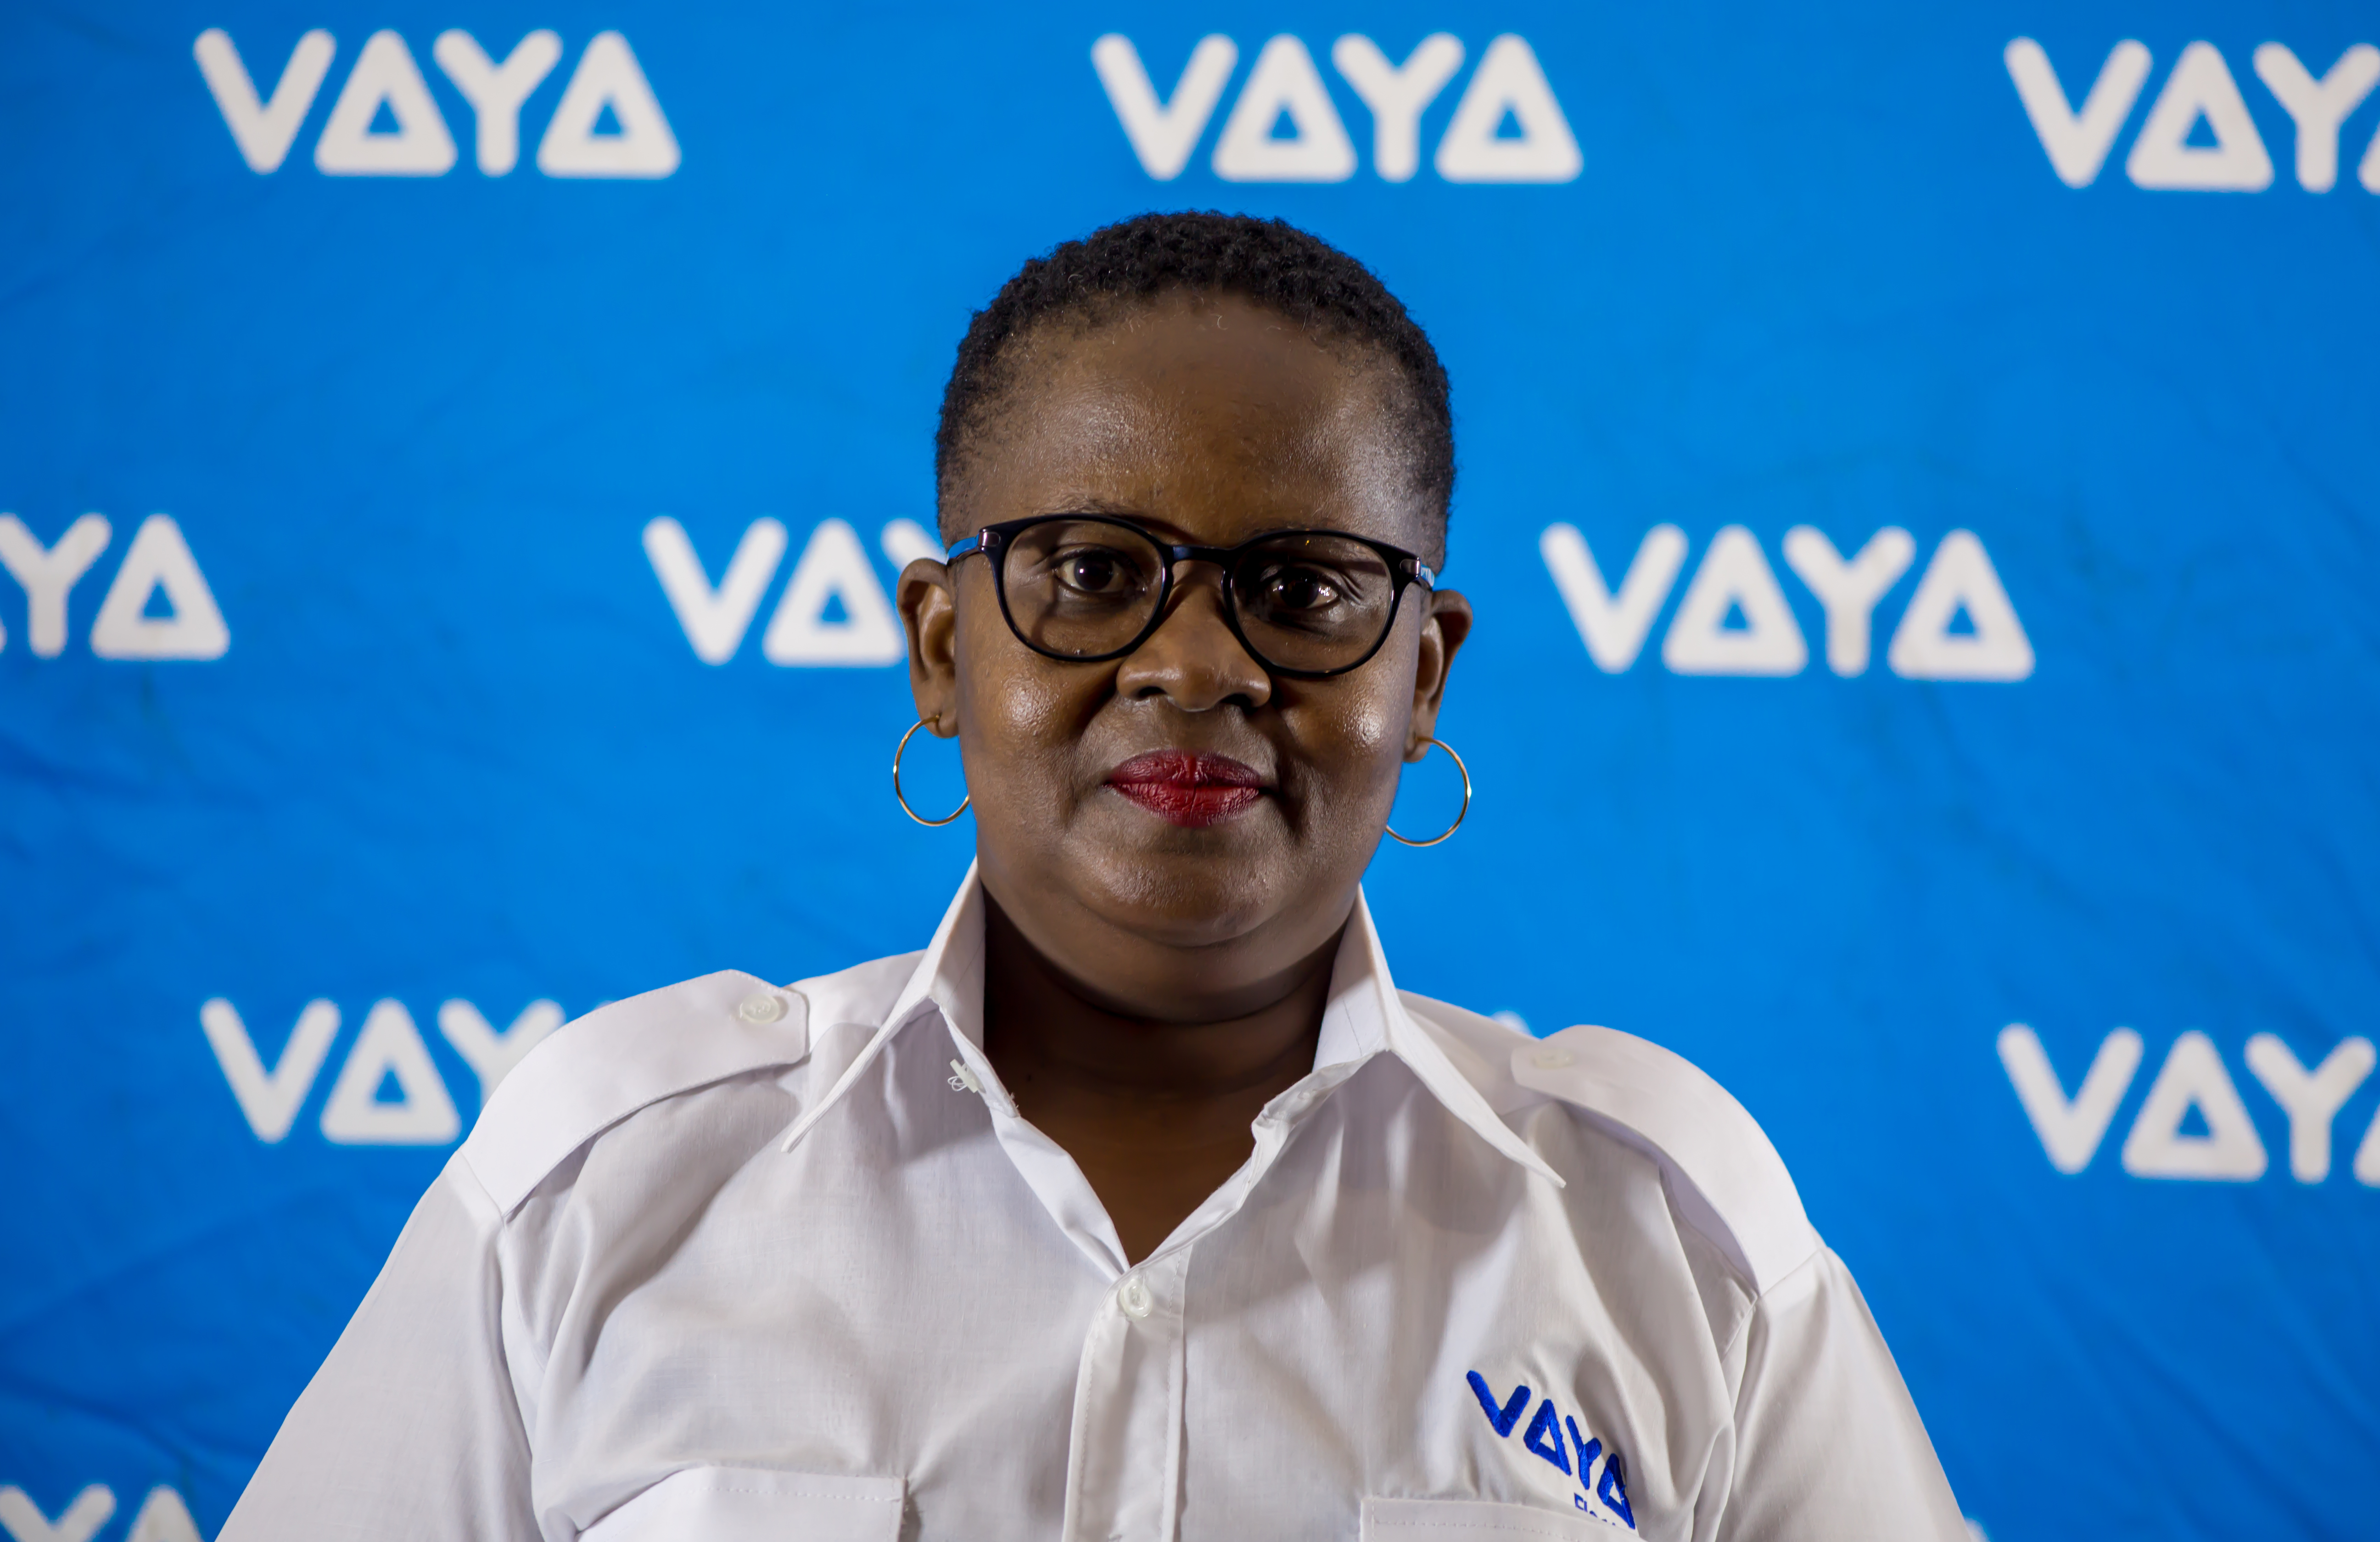 Vaya Africa launches electric ride-hail taxi network